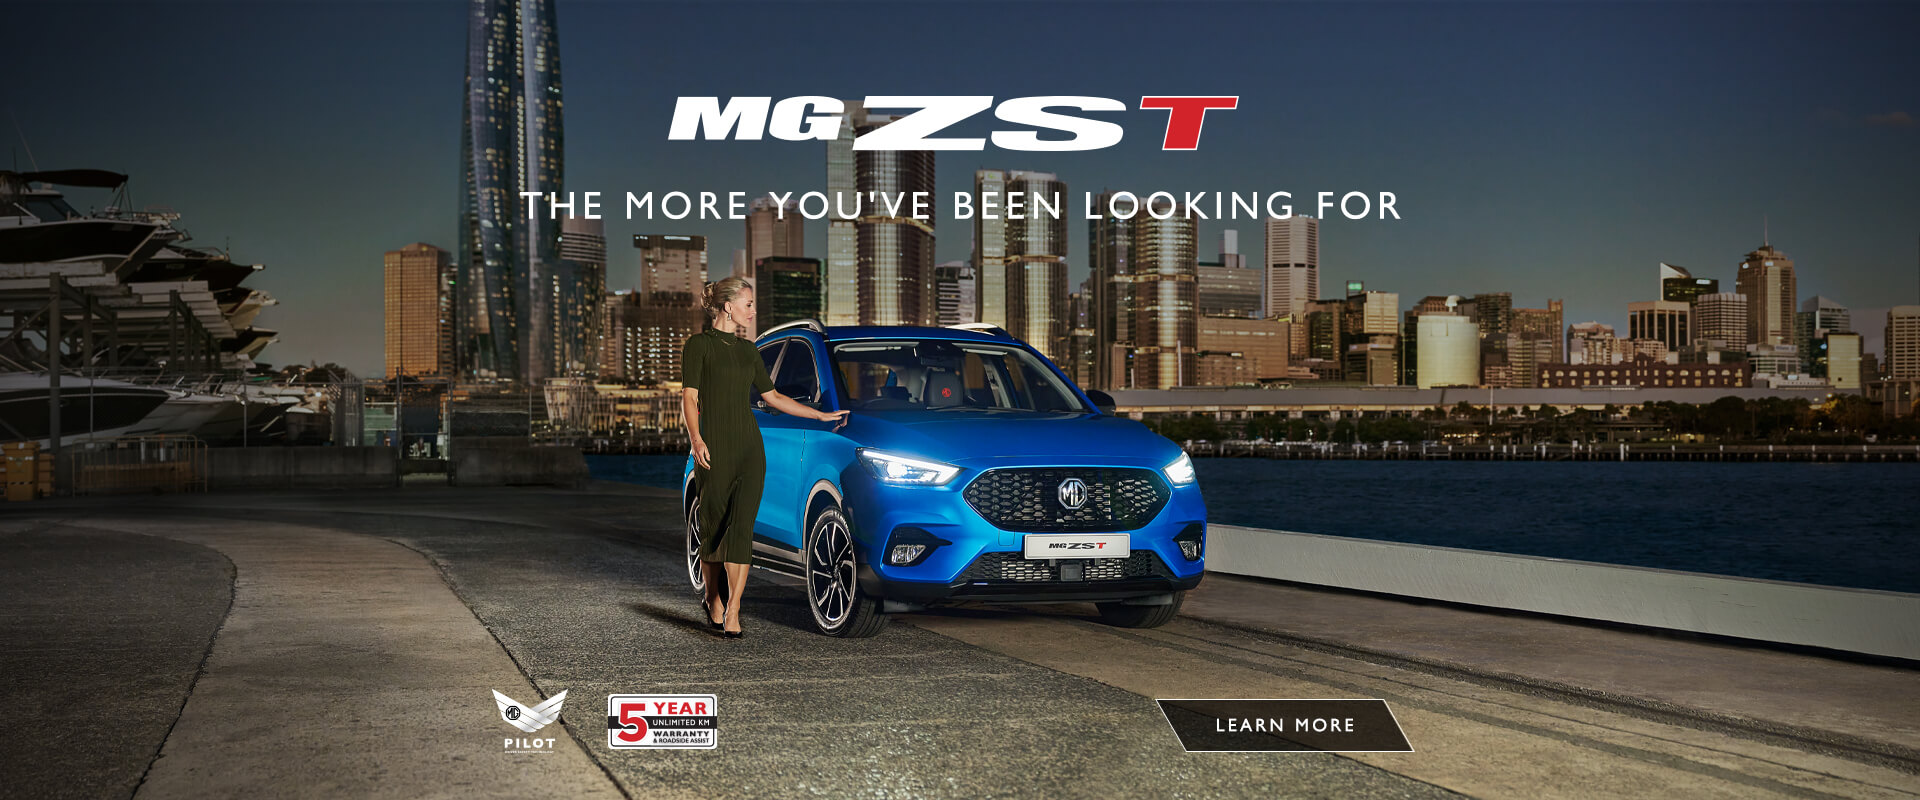 The all new MG ZST - There's a new model in town.